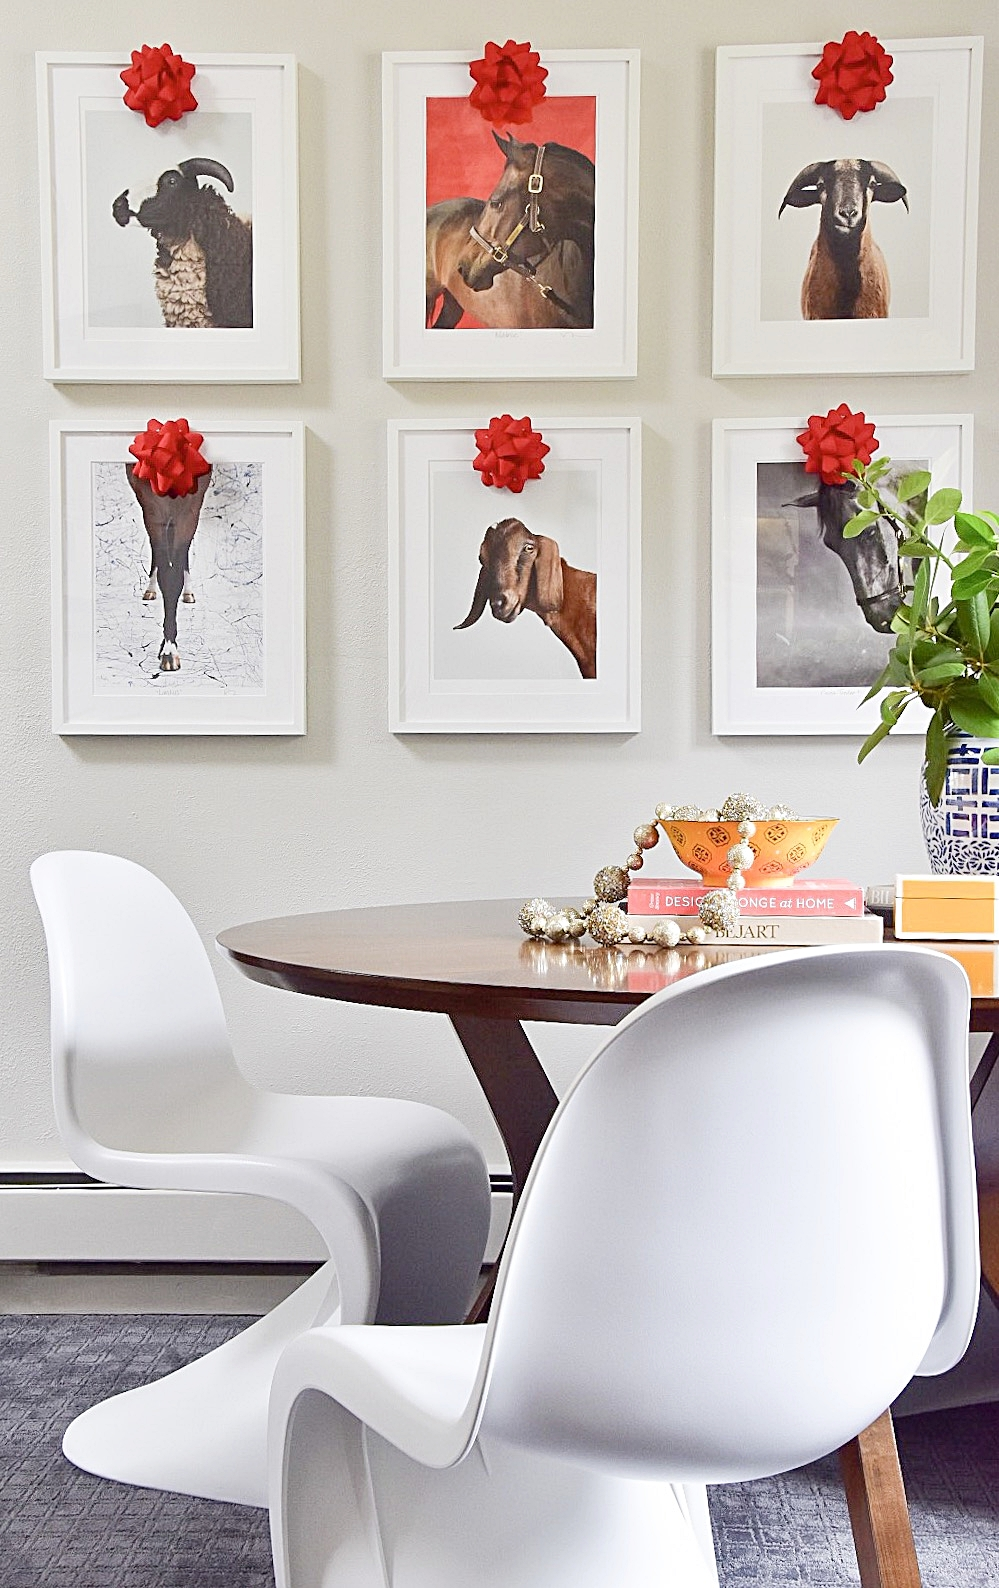 gallery wall animals with bows.JPG